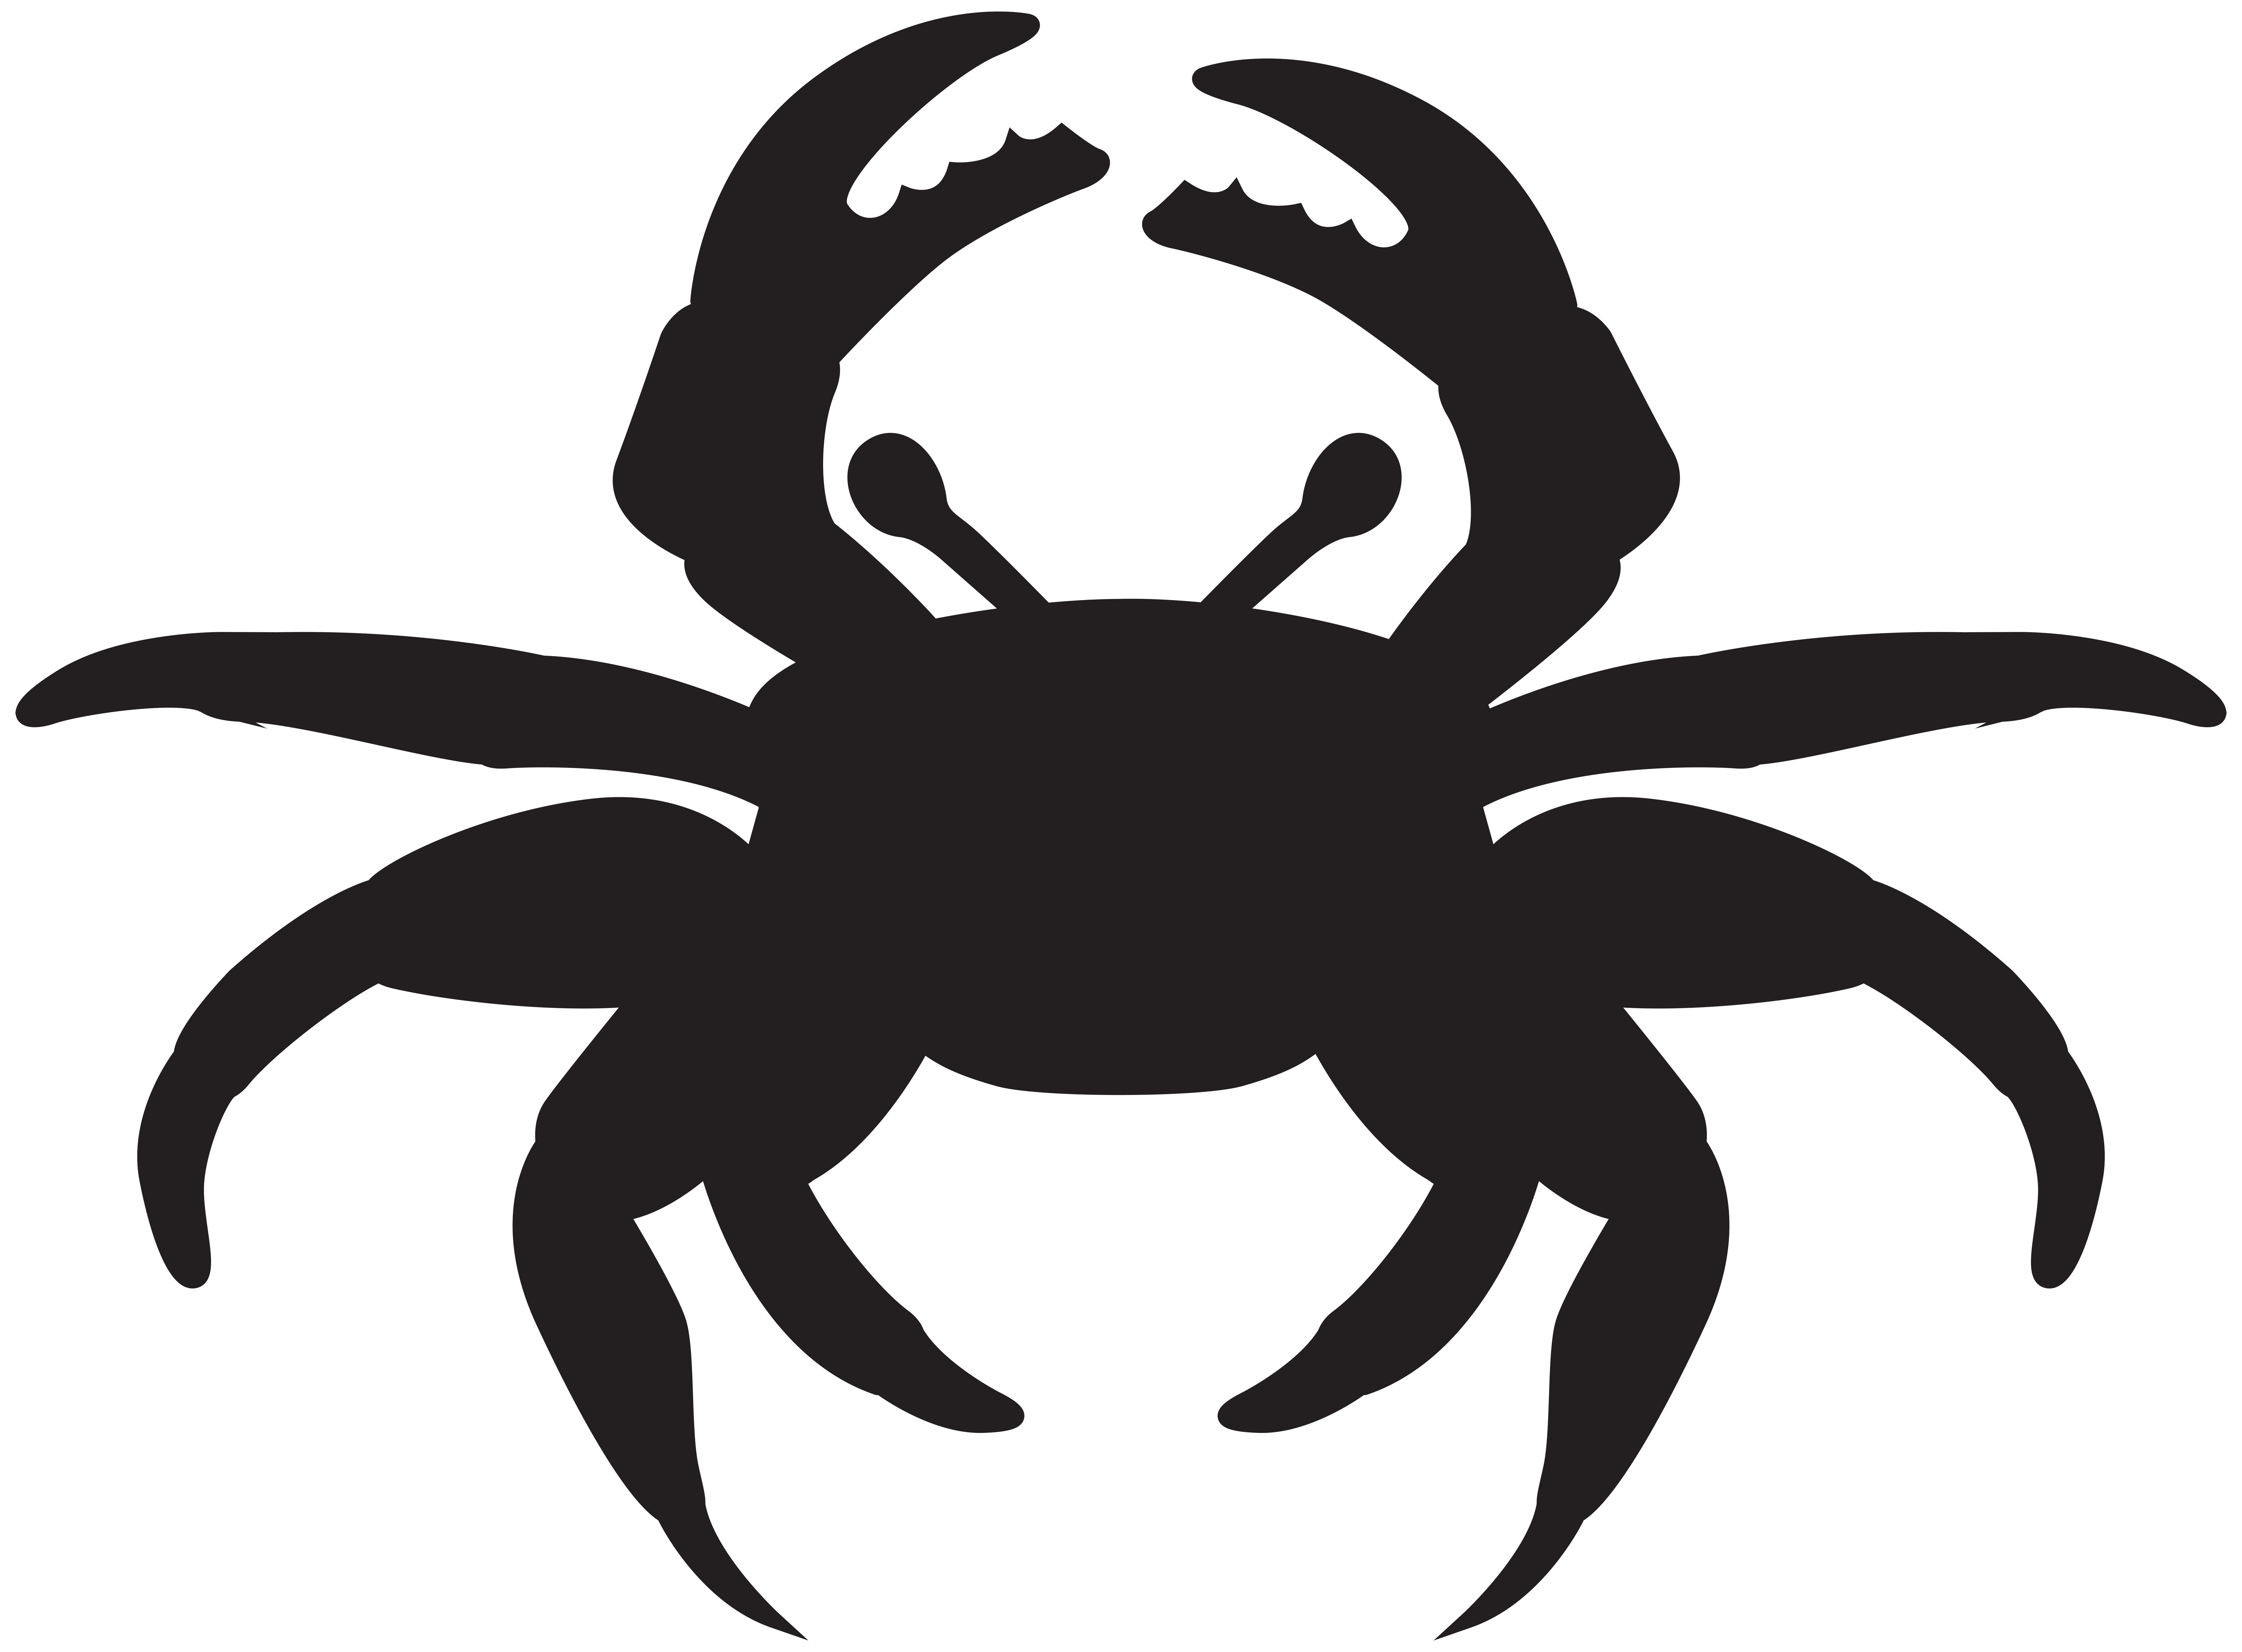 Crab silhouette png. Clip art image gallery